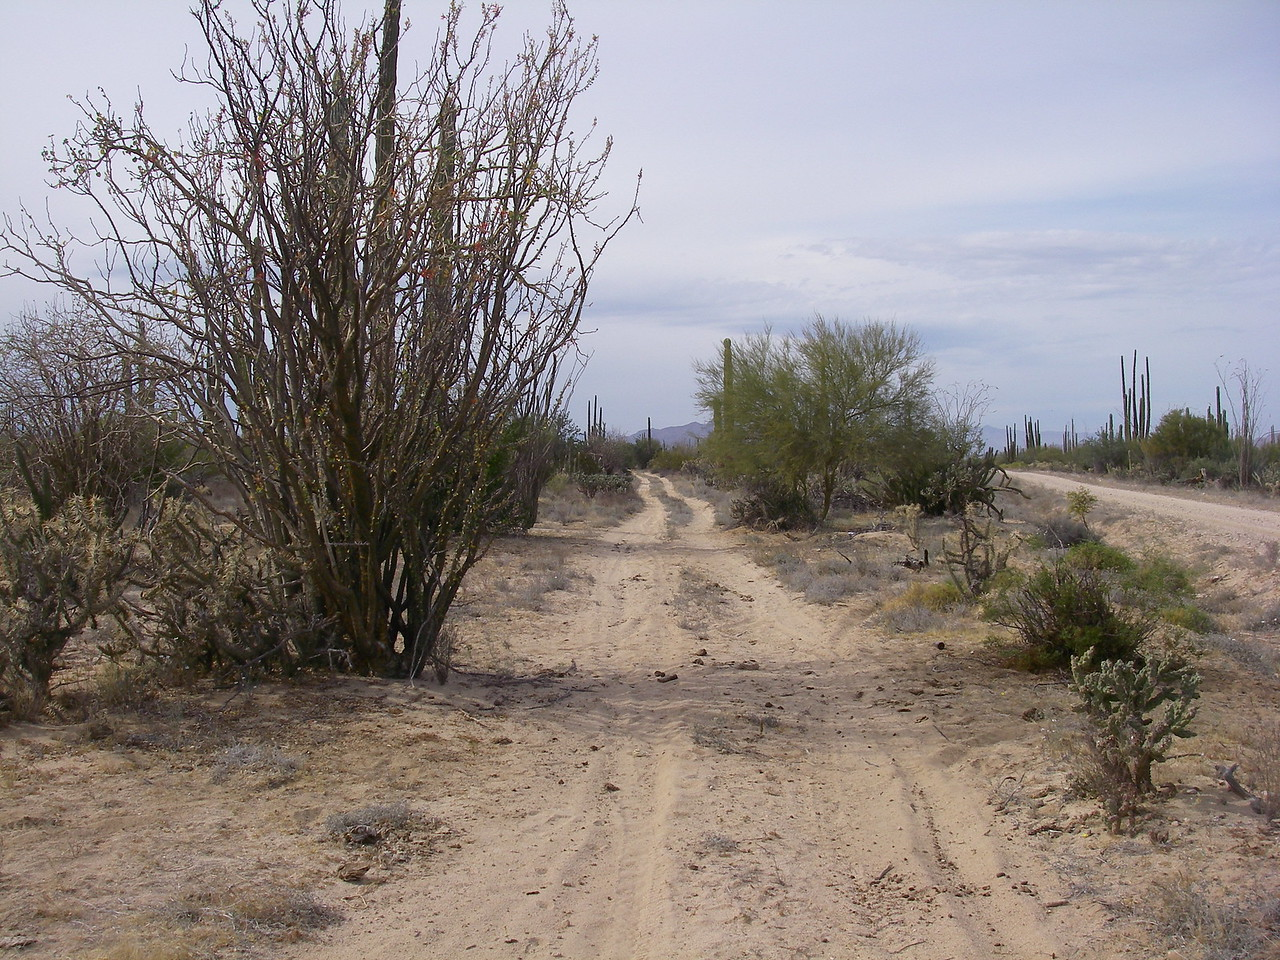 """Entrance to the South end of the """"Green Door Trail"""".  The first few kms were small whoops non-stop, real sandy, real fun!"""